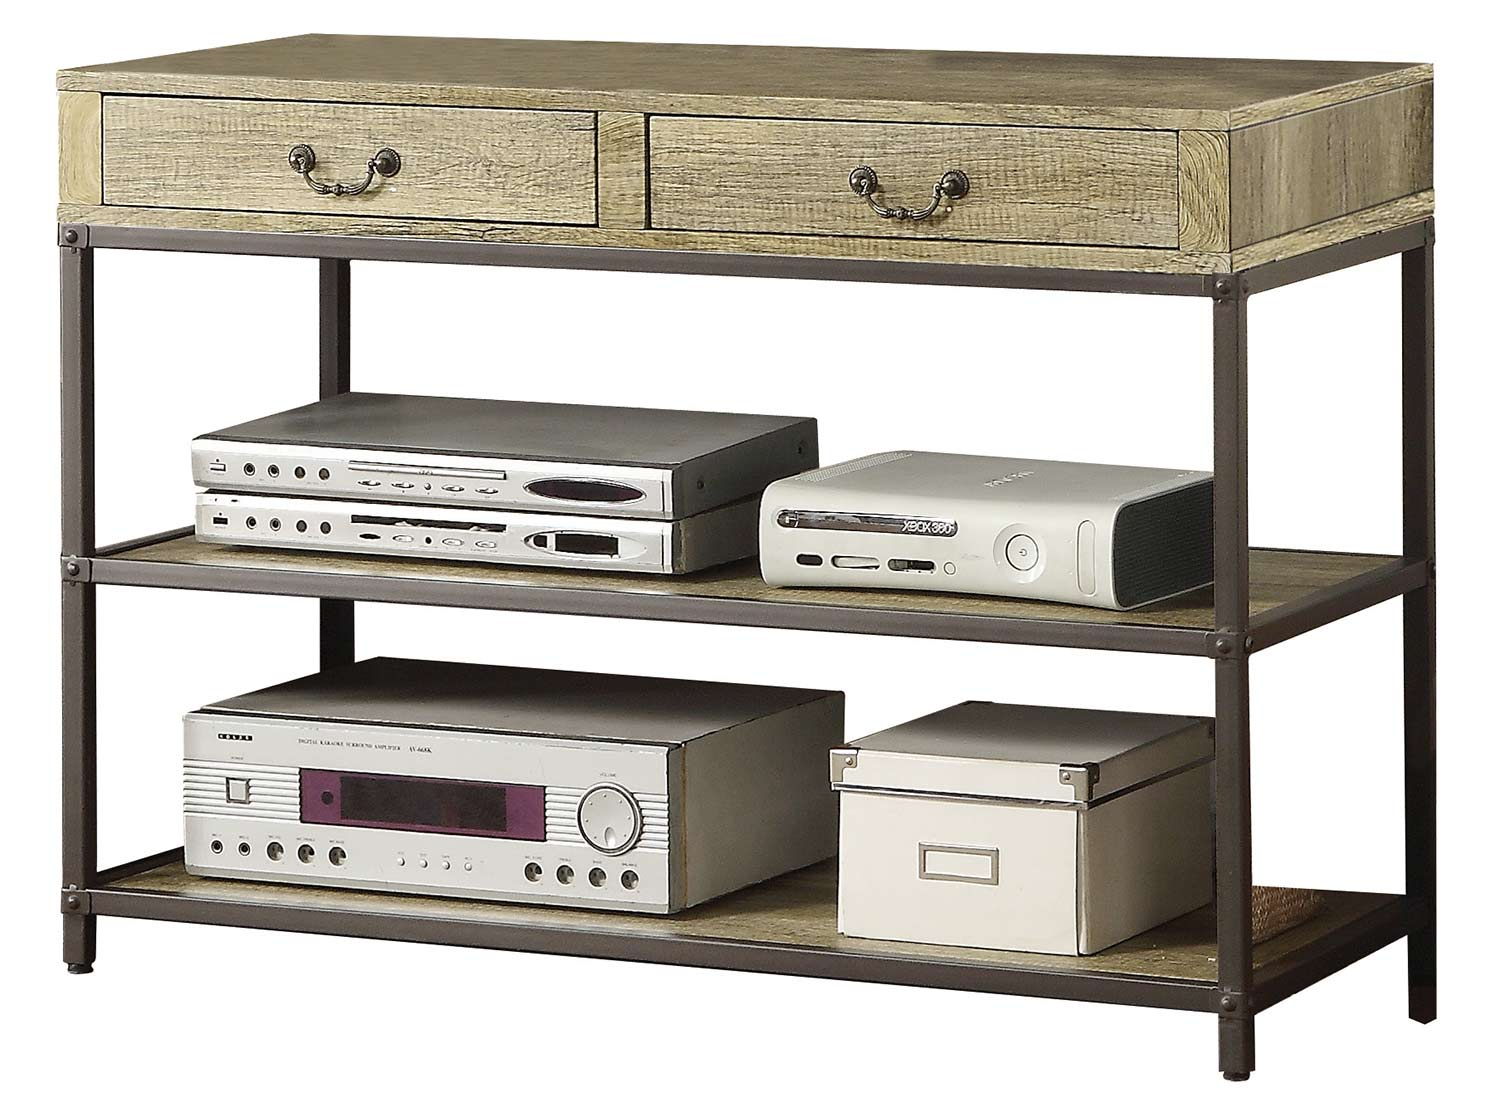 Homelegance Rumi TV Stand/Sofa Table and Drawers - Light Burnished Wood with Metal Frame